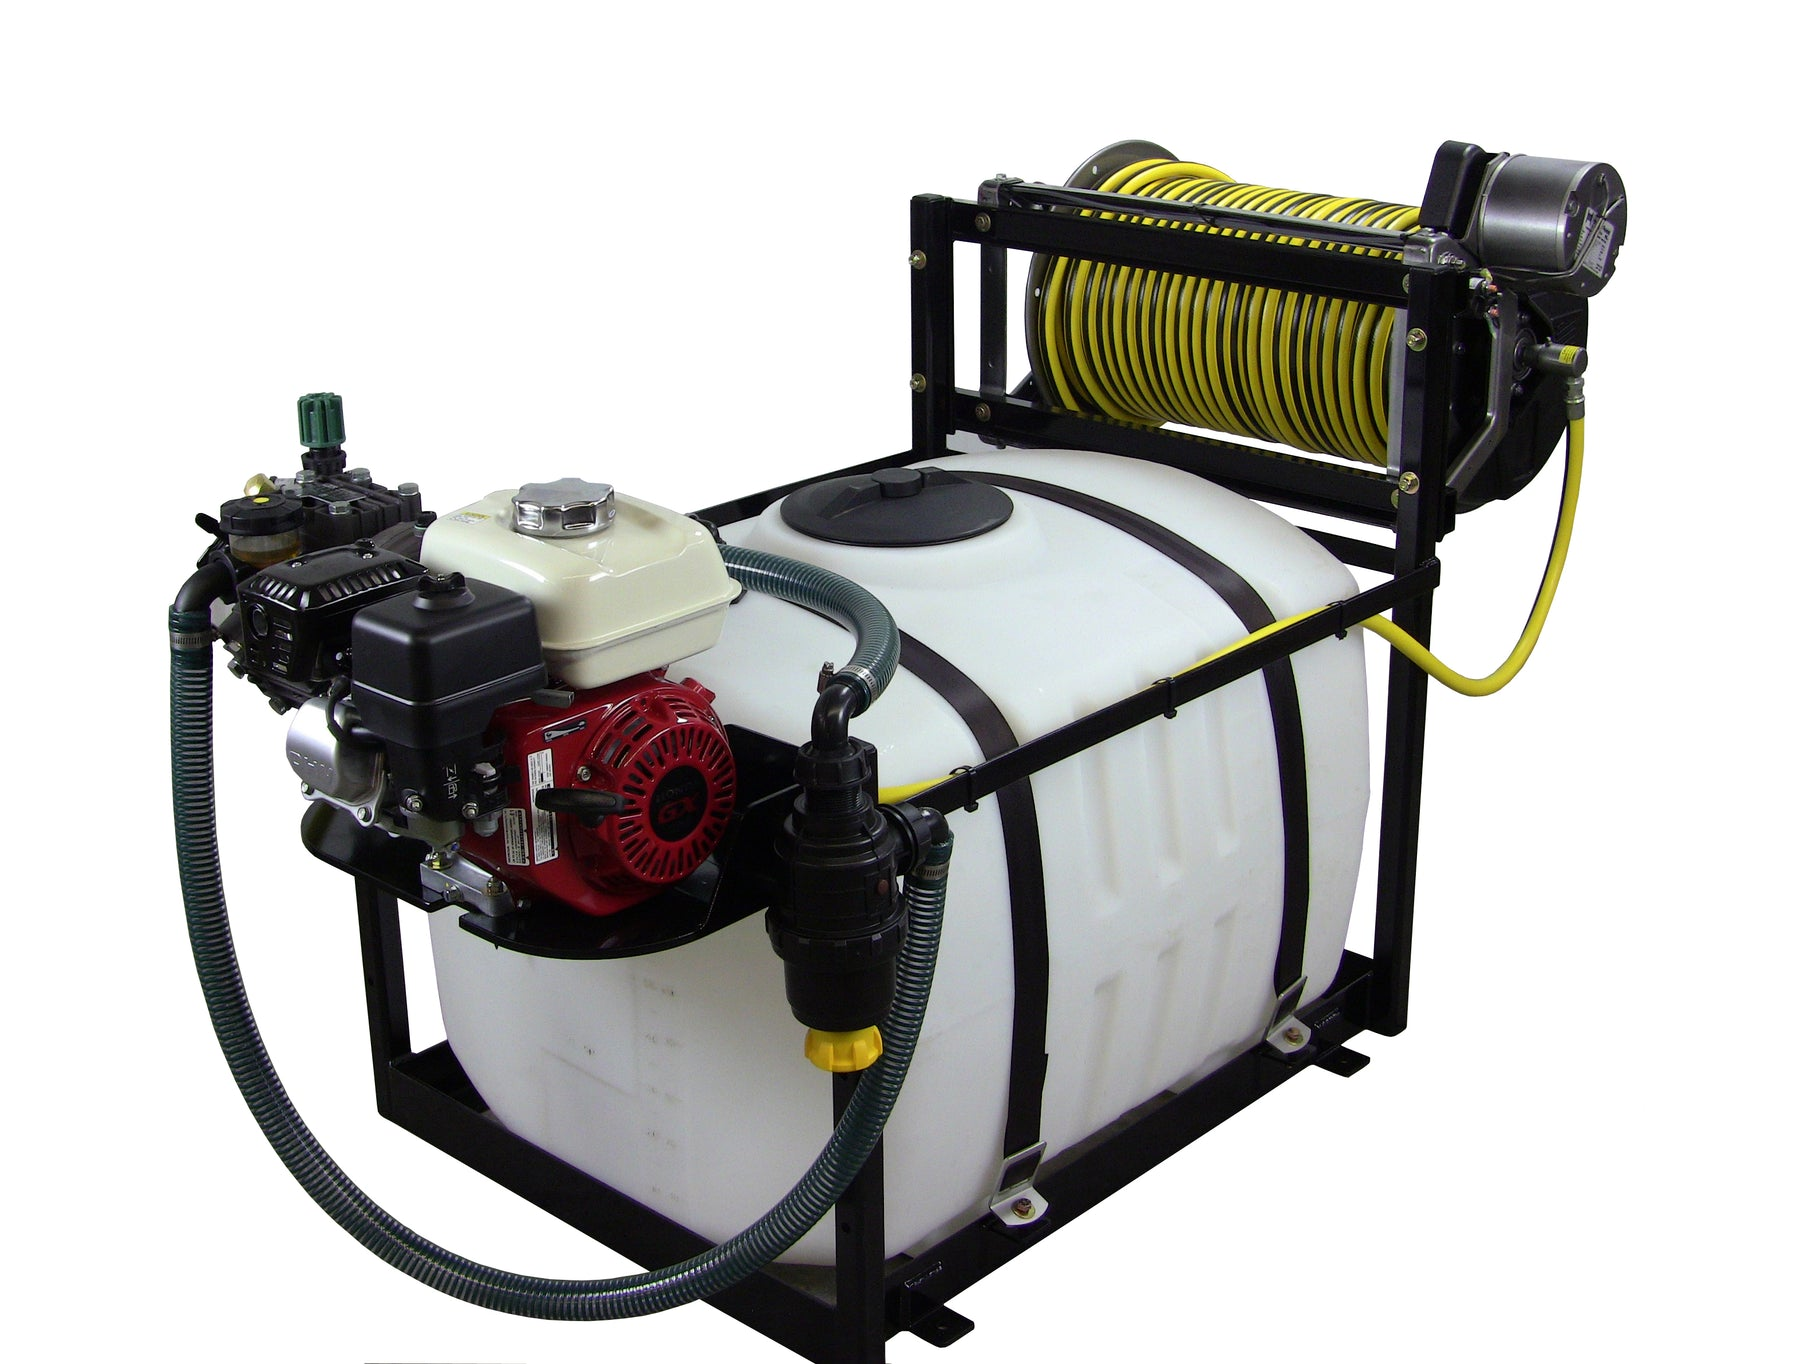 100-Gallon Skid Sprayer